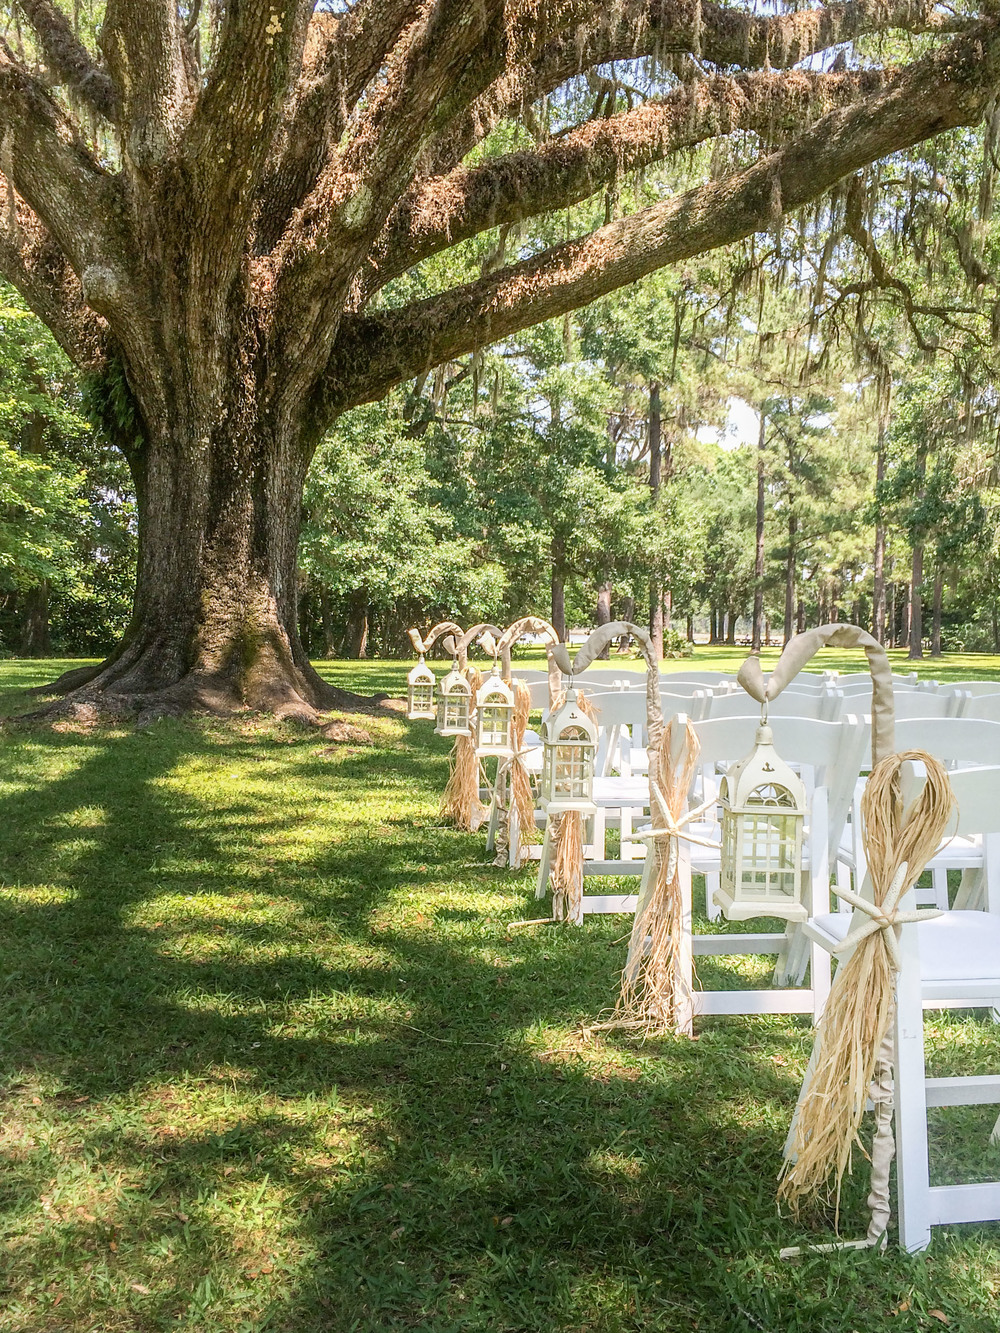 We've had the honor of performing many weddings at Eden Gardens State Park. Access is easy, parking and facilities are all first rate.  Receptions can be held there as well.